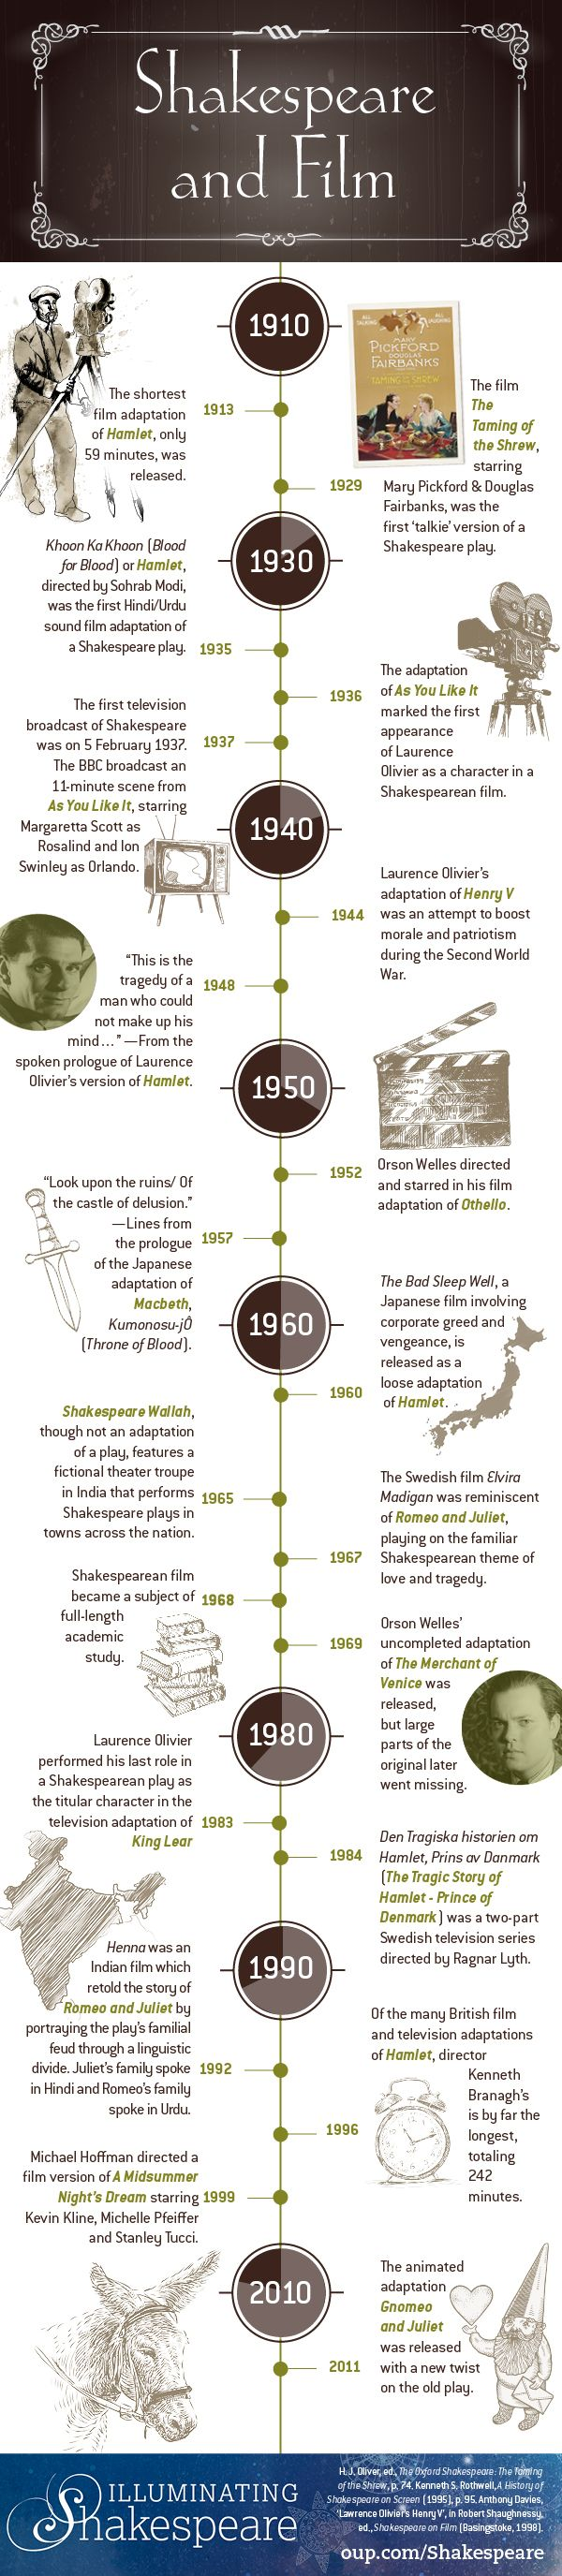 Shakespeare on screen [infographic] | OUPblog